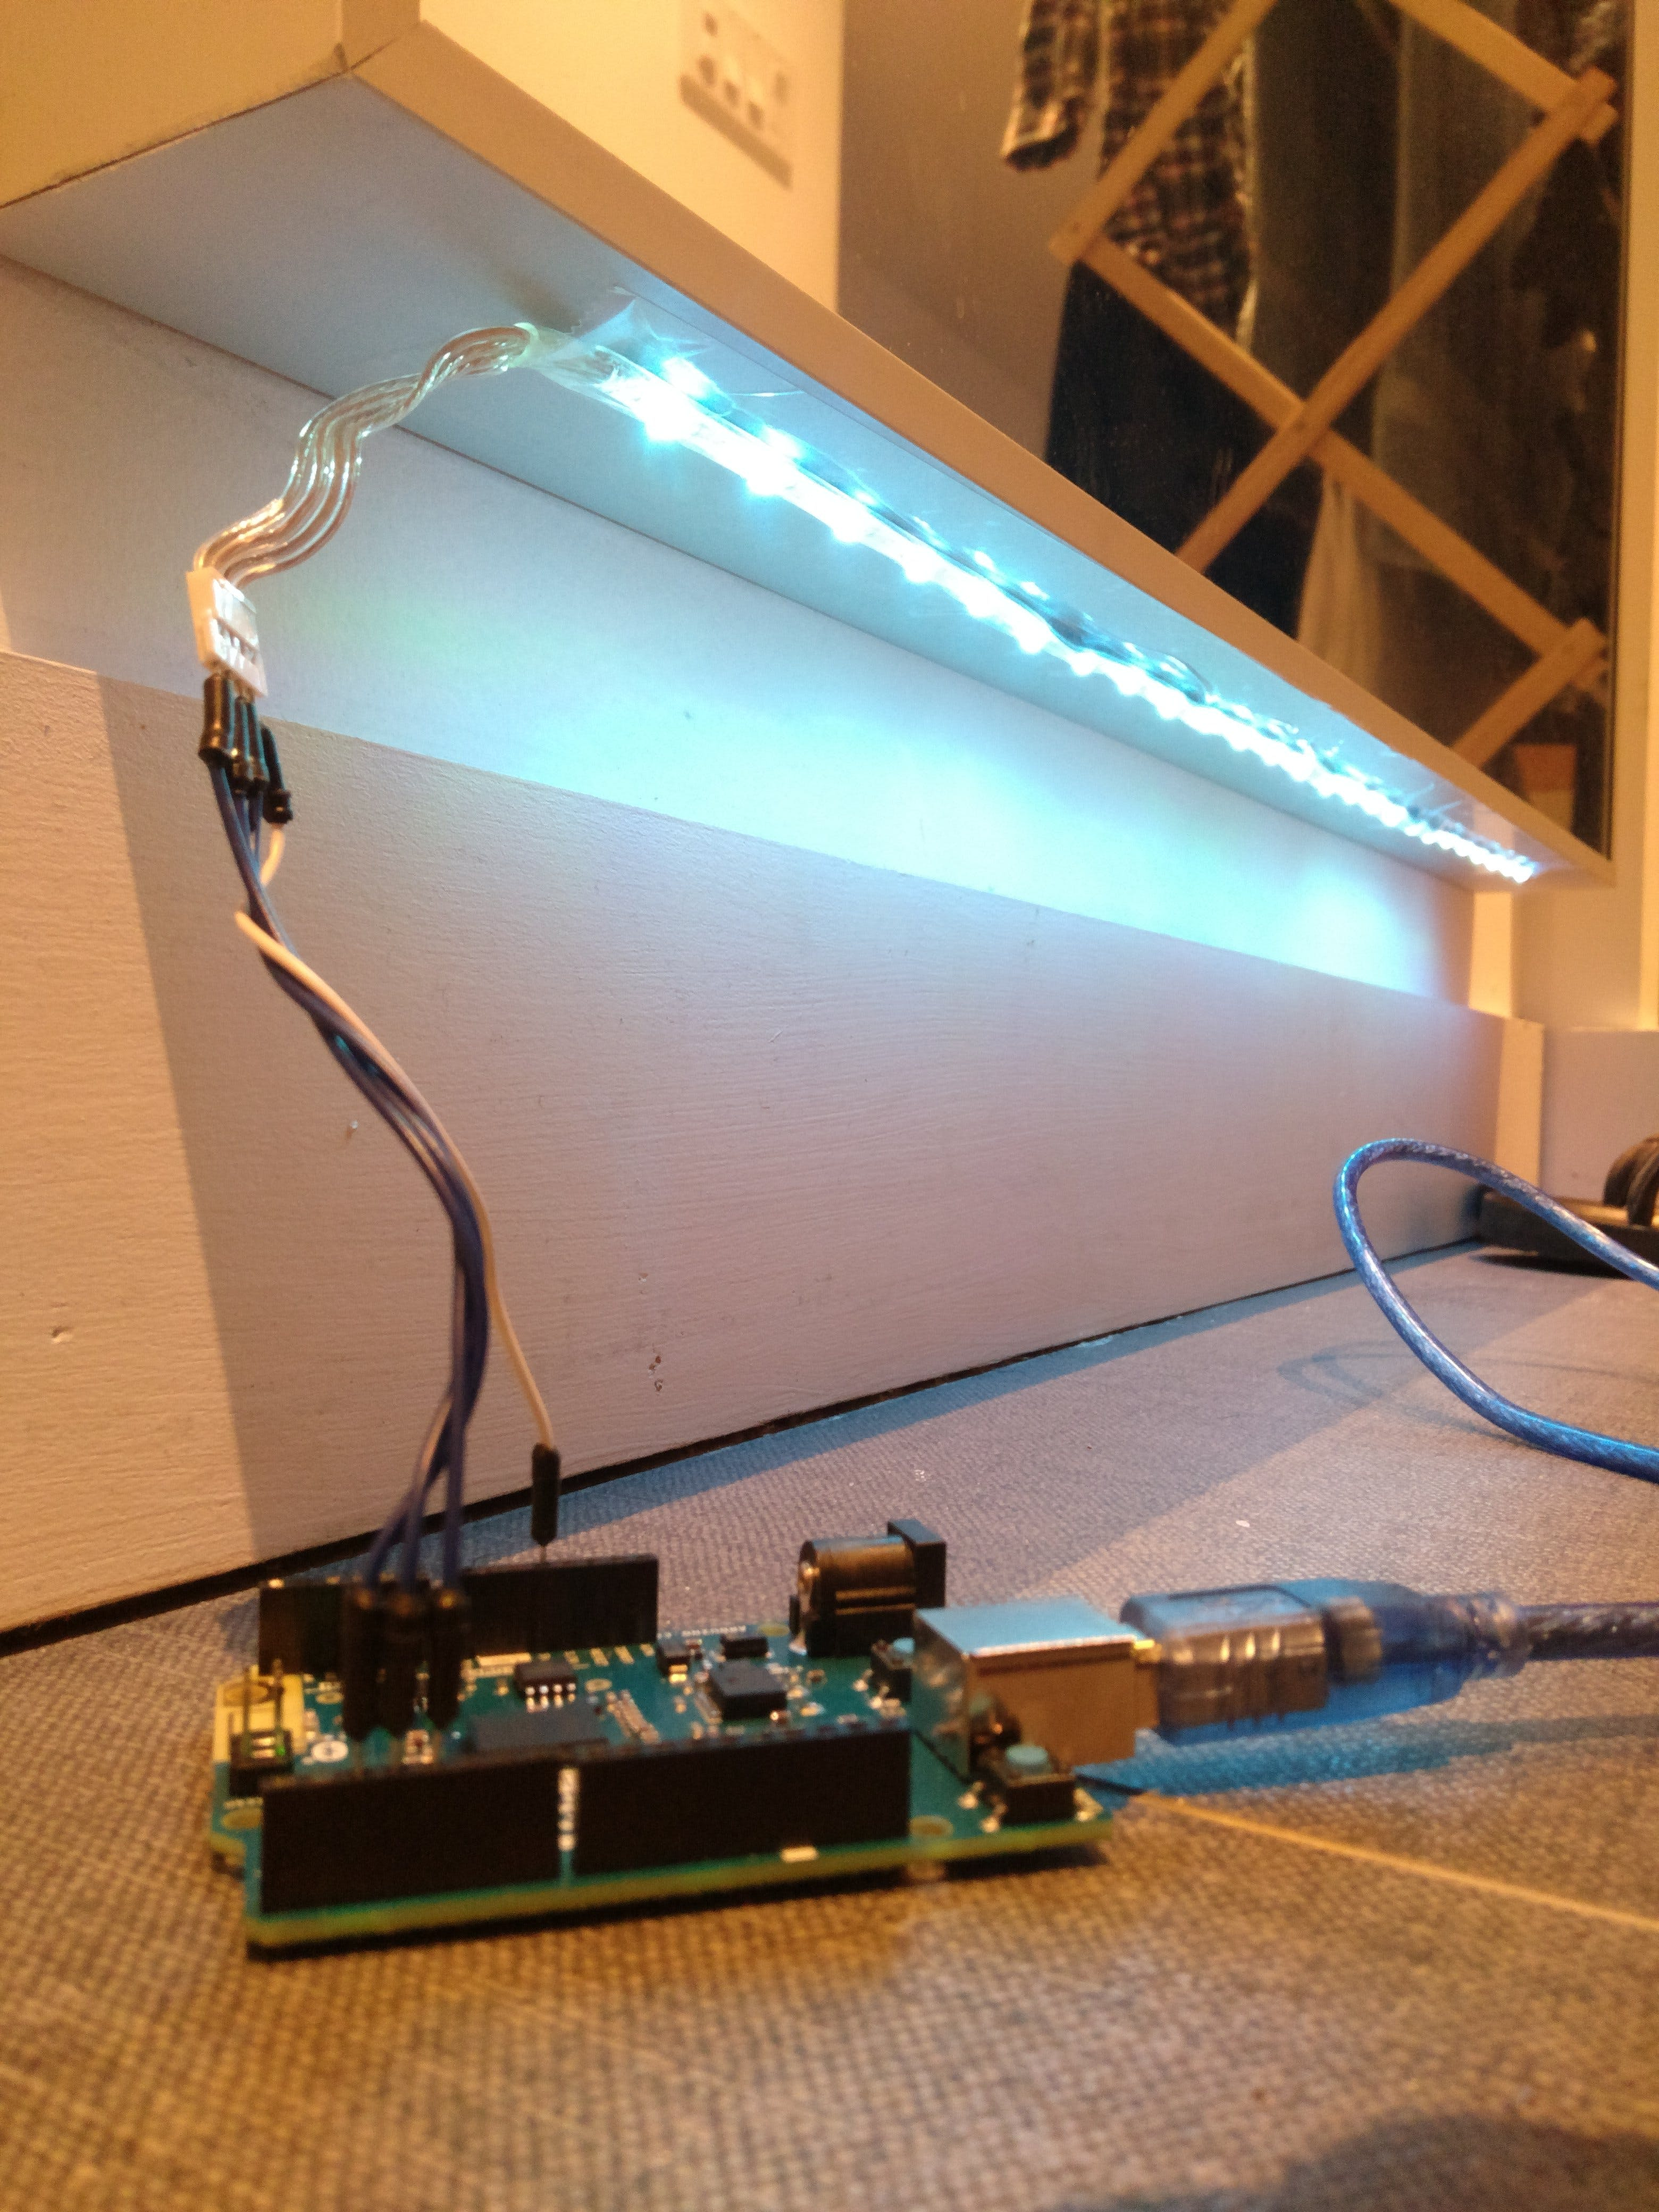 Showing off the installation of the RGB LED strip.